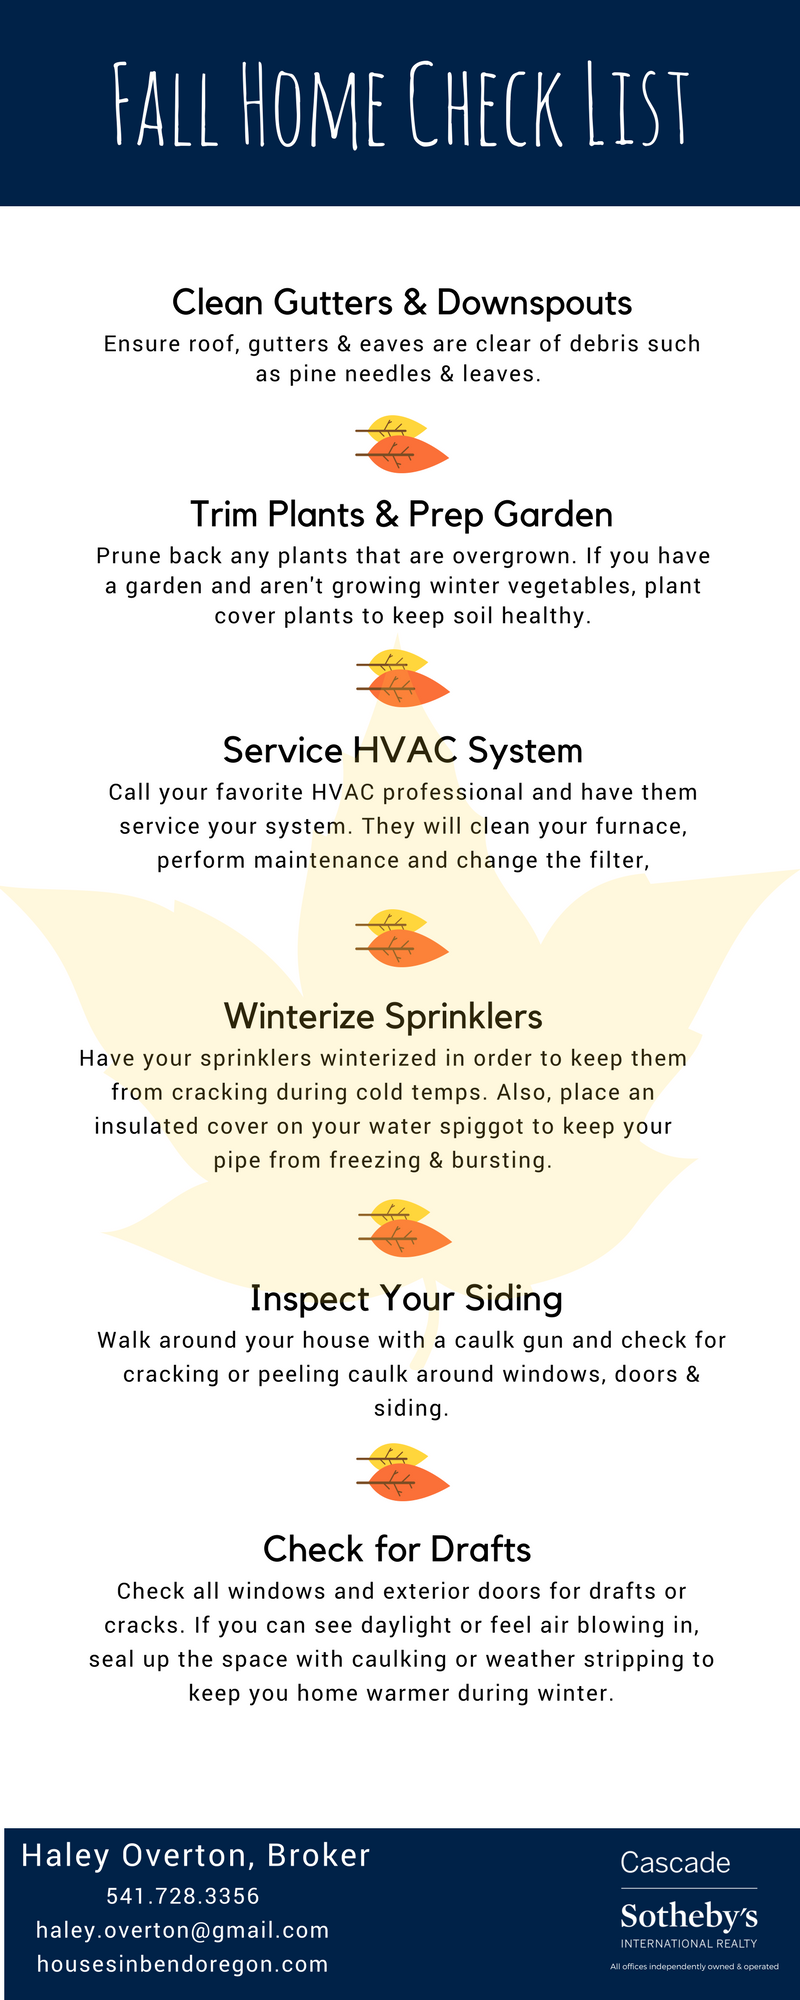 Fall Home Maintenance Tips — Home Buying, Selling & Investing in Home Maintenance Tips on home repair tips, home inspection tips, home repair help, home storage tips, home buying tips, home security tips, home management tips, home recycling tips, home cleaning tips, home marketing tips, home remodeling tips, home safety tips, home improvement, home selling tips, real estate tips, home energy tips, tips for selling your home, home heating tips, photography tips, home fix-it tips, home care tips, home decor tips, home insurance tips, home protection tips, home design tips,